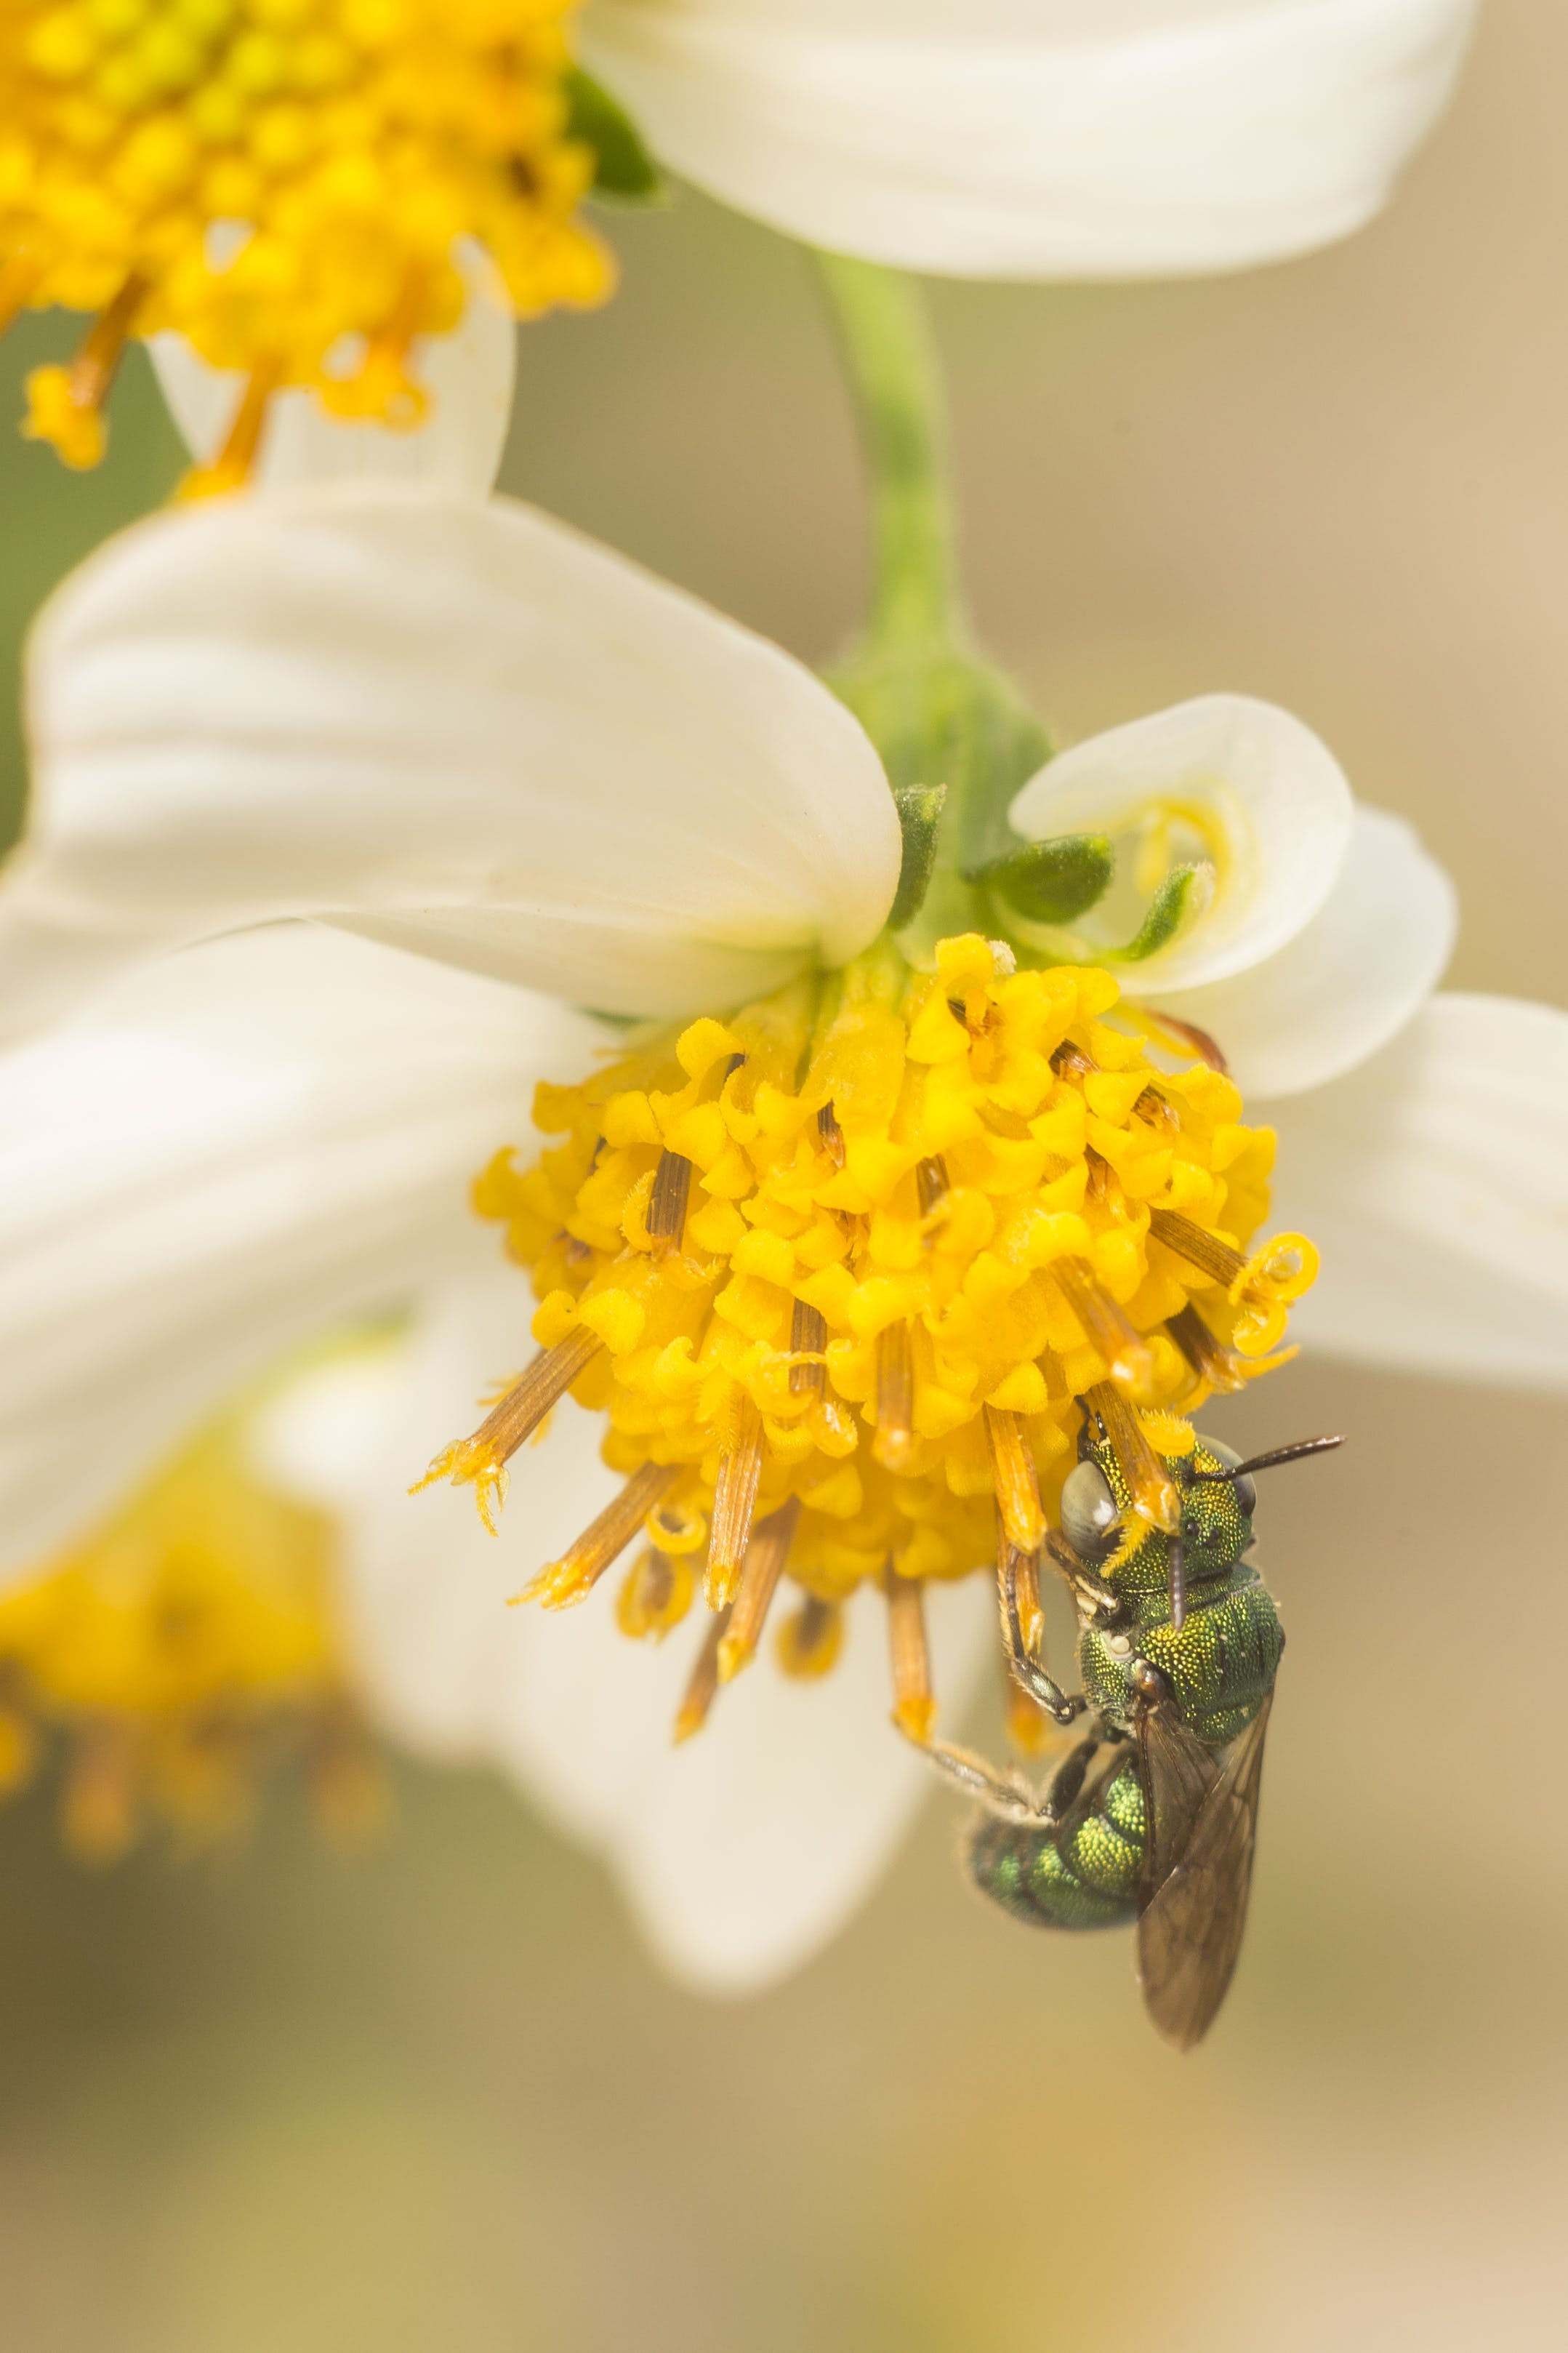 Free stock photo of bees, wasp